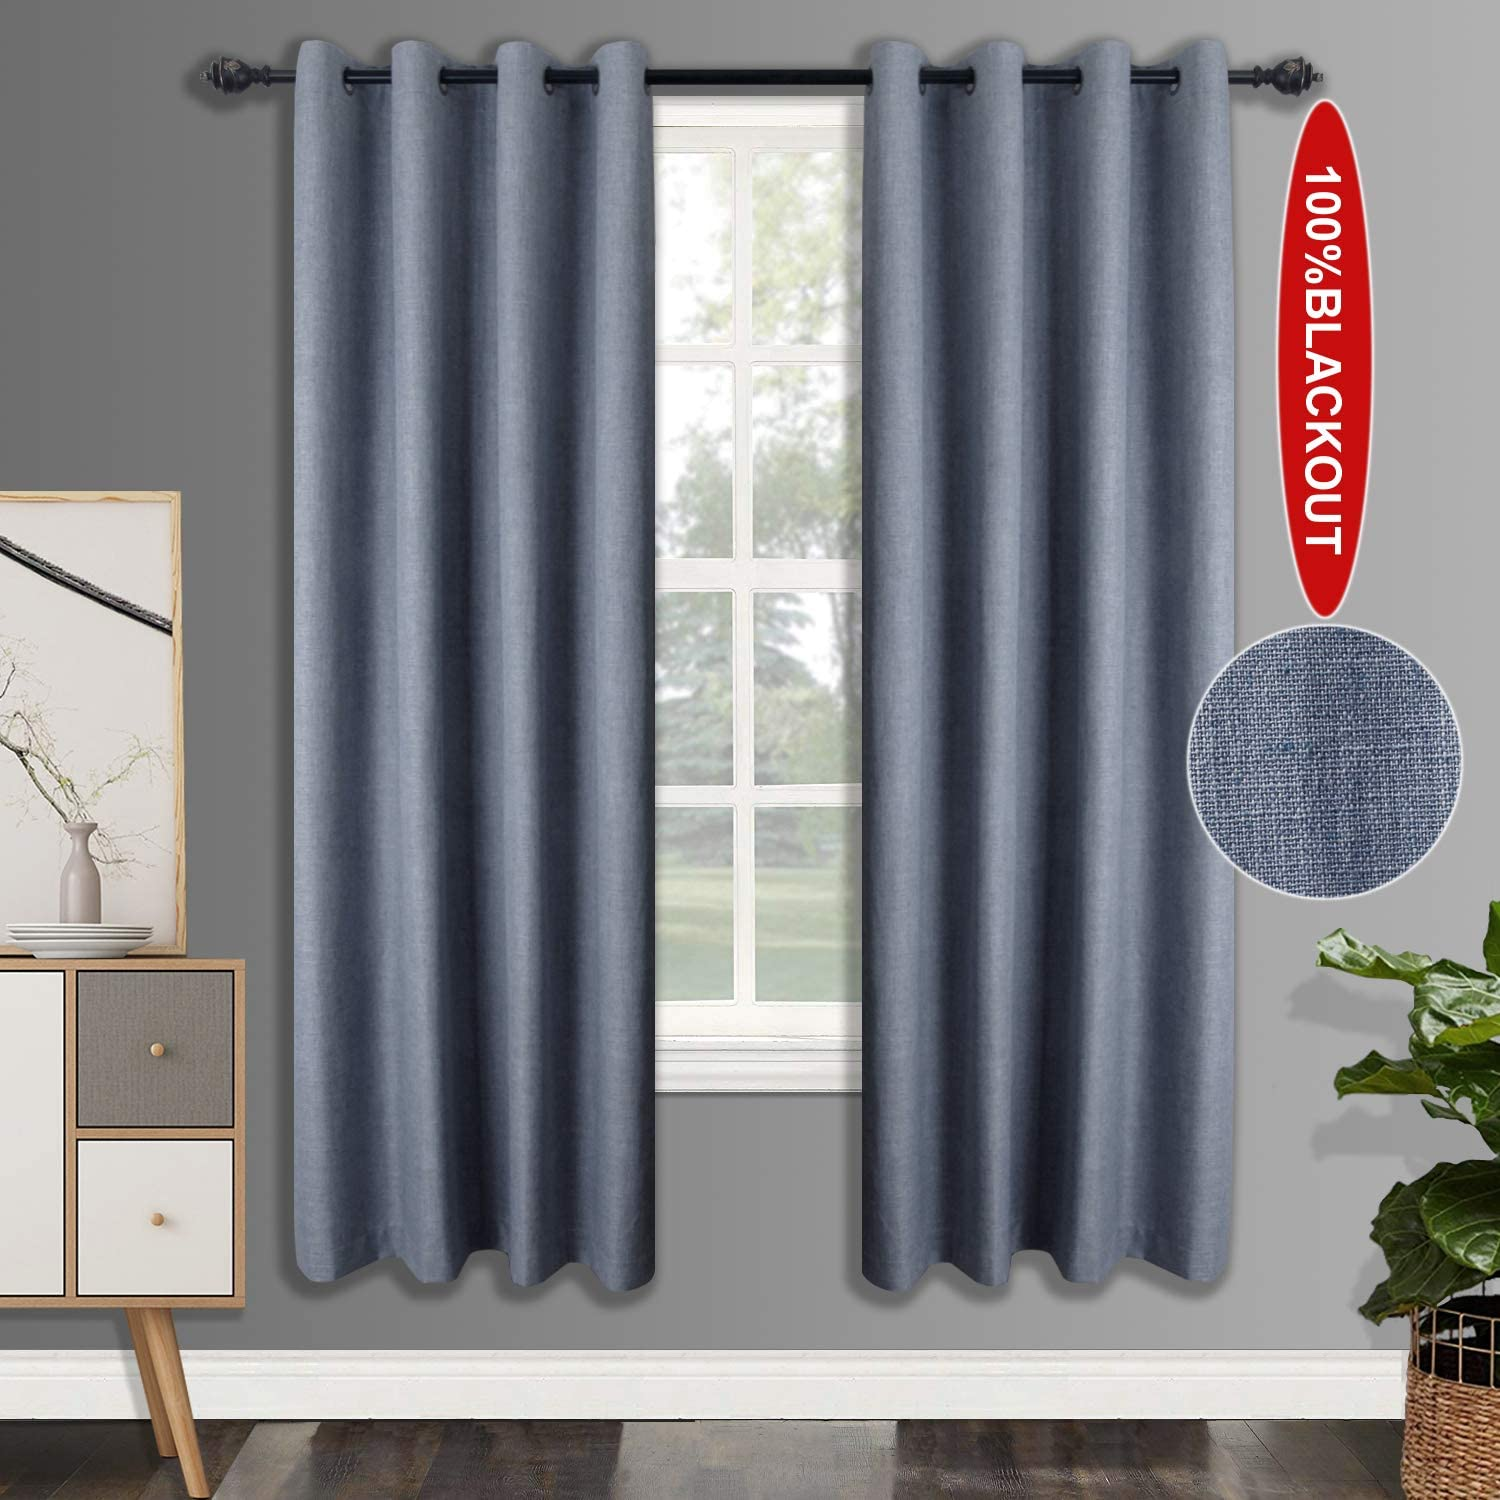 Free Amazon Promo Code 2020 for Blackout Linen Curtains with 4 Pass Coating